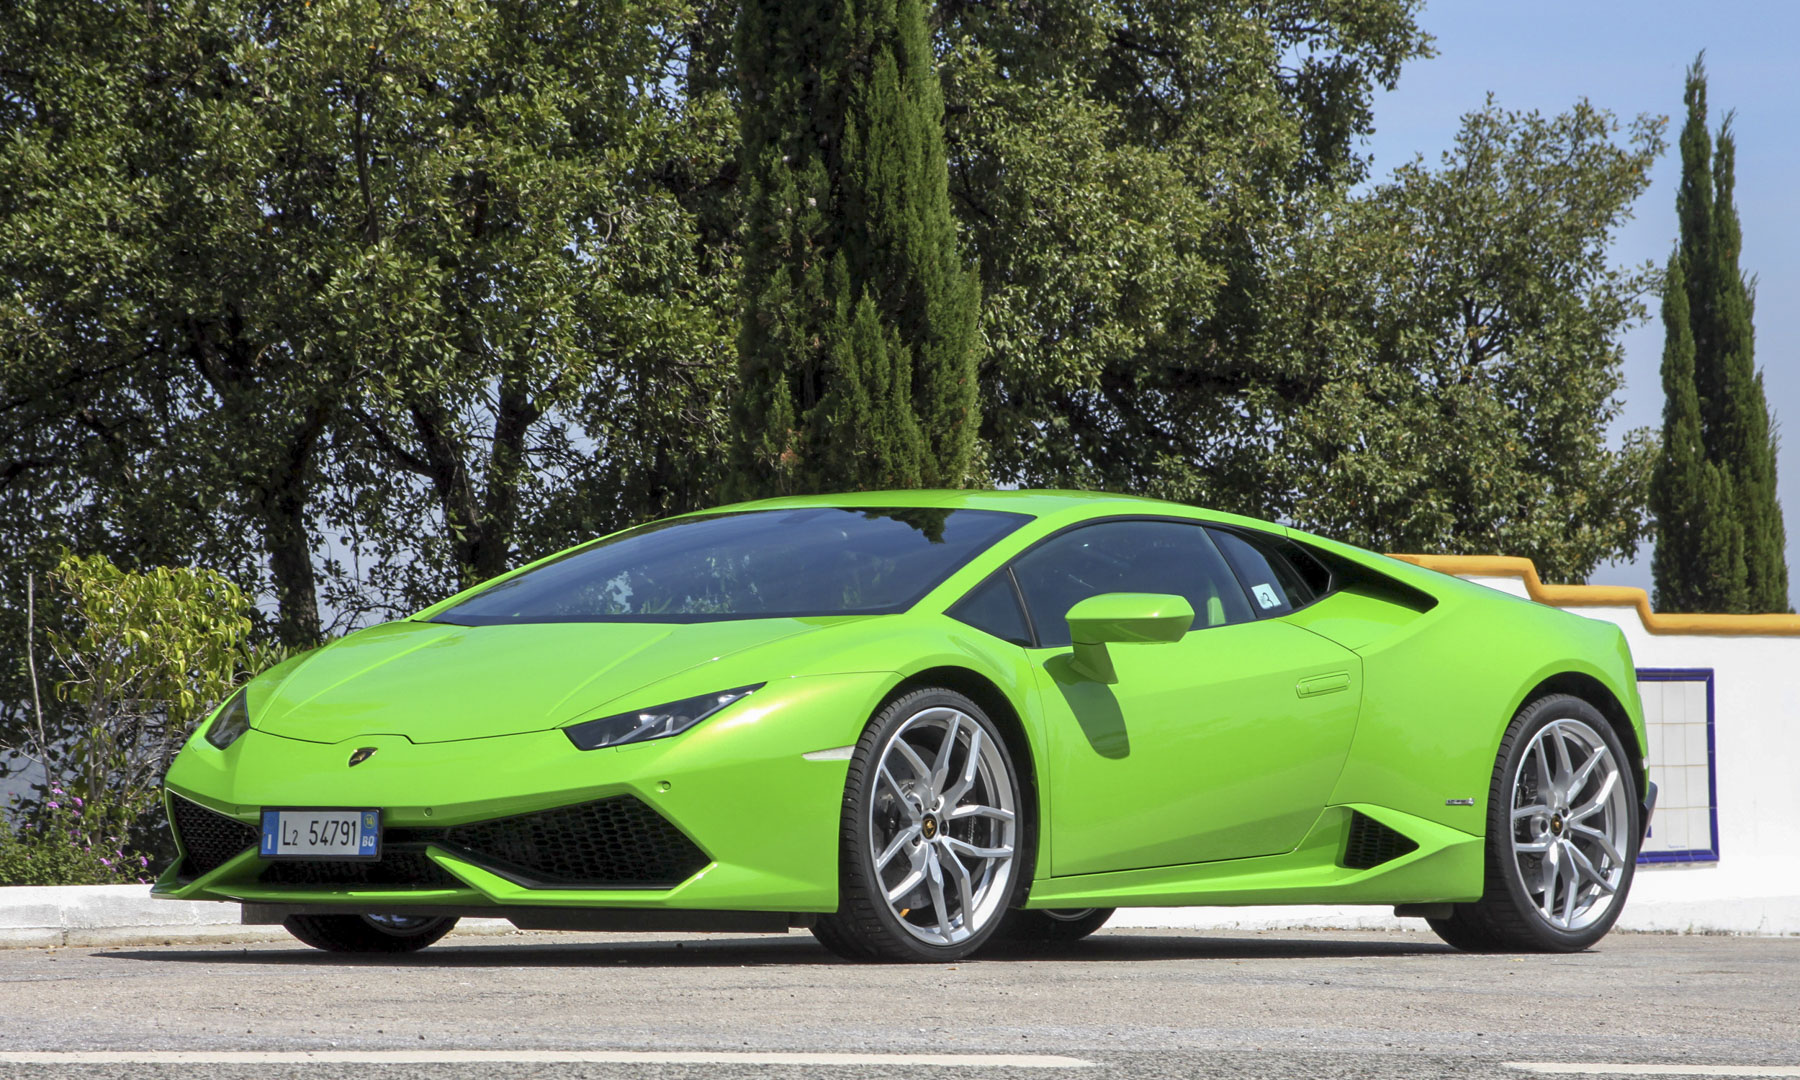 lamborghini huracan price and specs lamborghini huracan. Black Bedroom Furniture Sets. Home Design Ideas